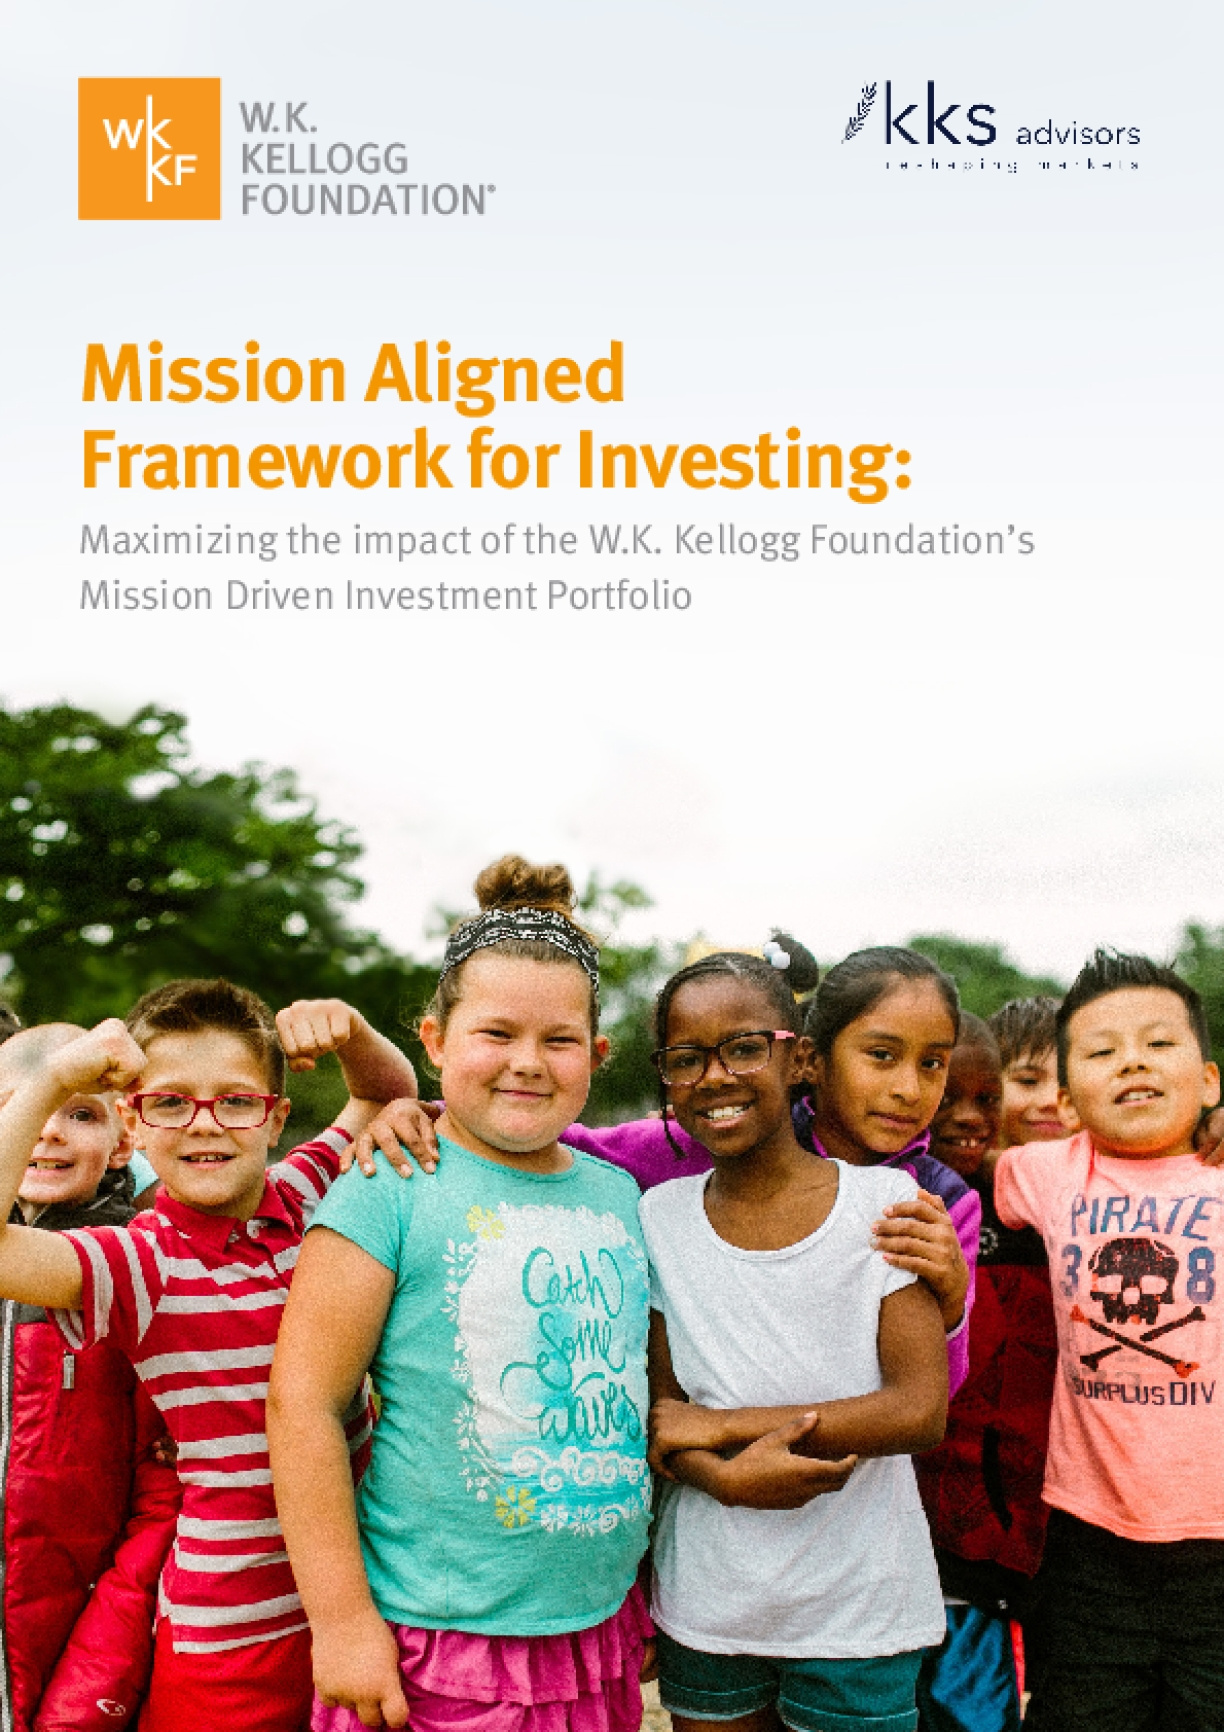 The Mission Aligned Framework for Investing: Maximizing the Impact of the W.K. Kellogg Foundation's Mission Driven Investment Portfolio